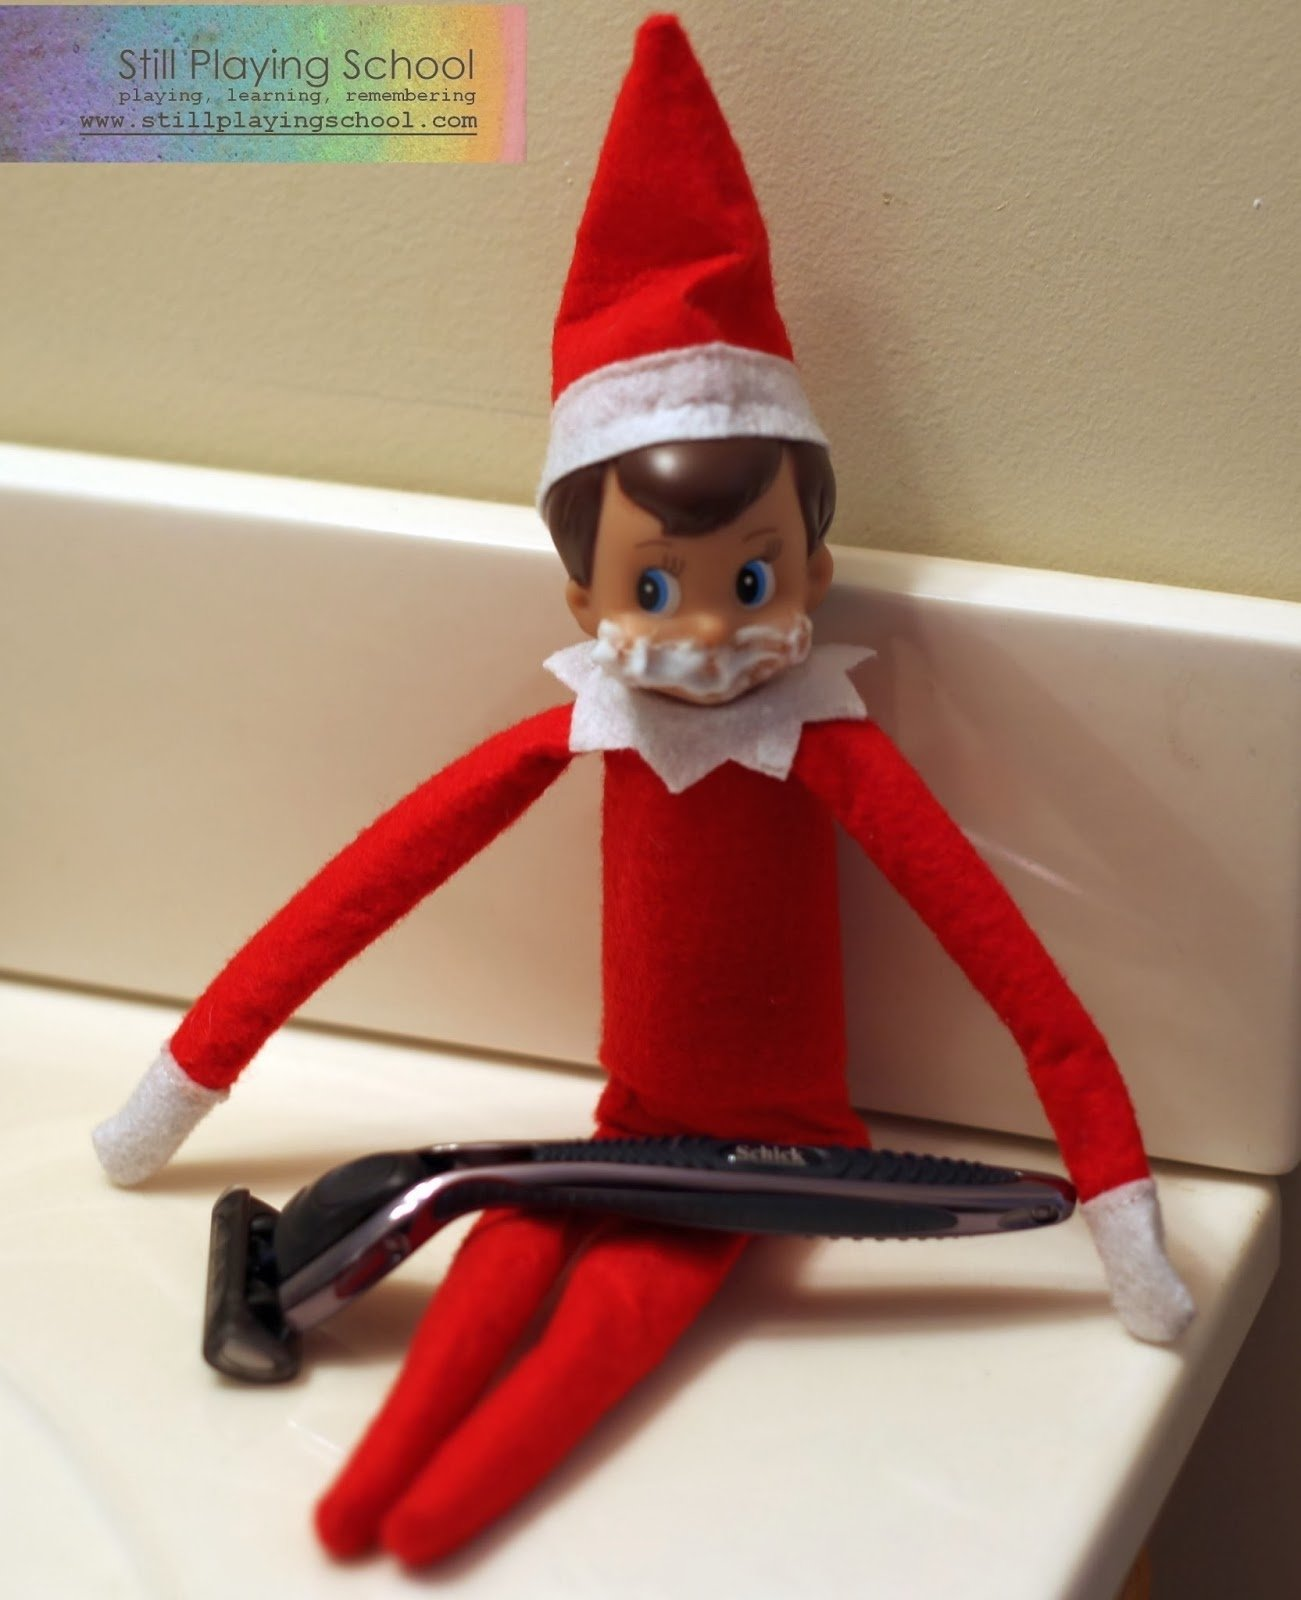 10 Stunning Fun Elf On The Shelf Ideas a month of elf on the shelf ideas still playing school 2020